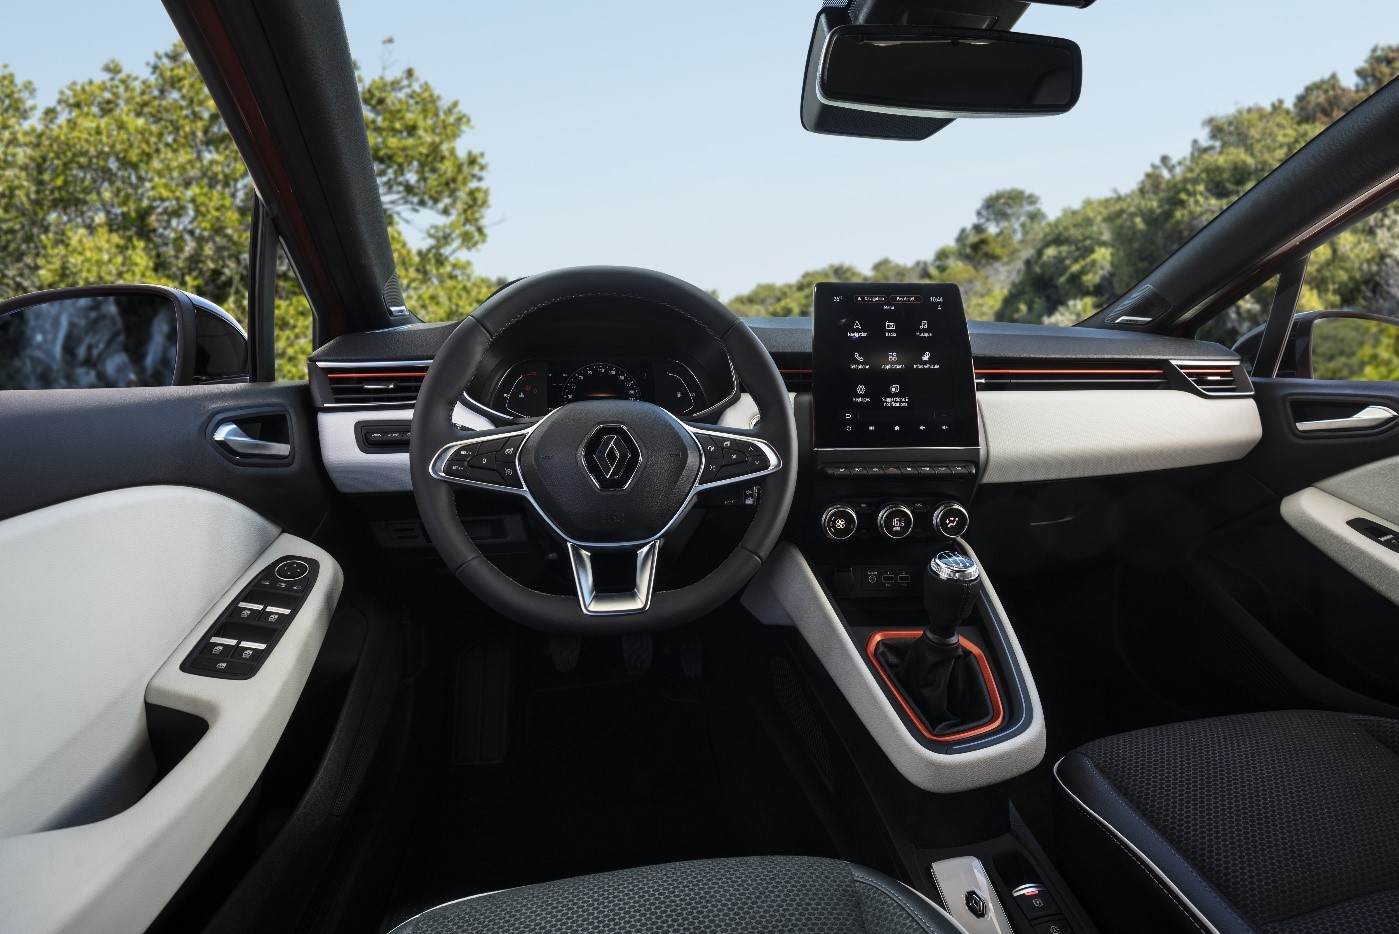 The interior of a Renault vehicle boasting LG's innovation award-winning Center Information Display (CID) that provides the driver with various information and settings for the car's audio, video and navigation systems